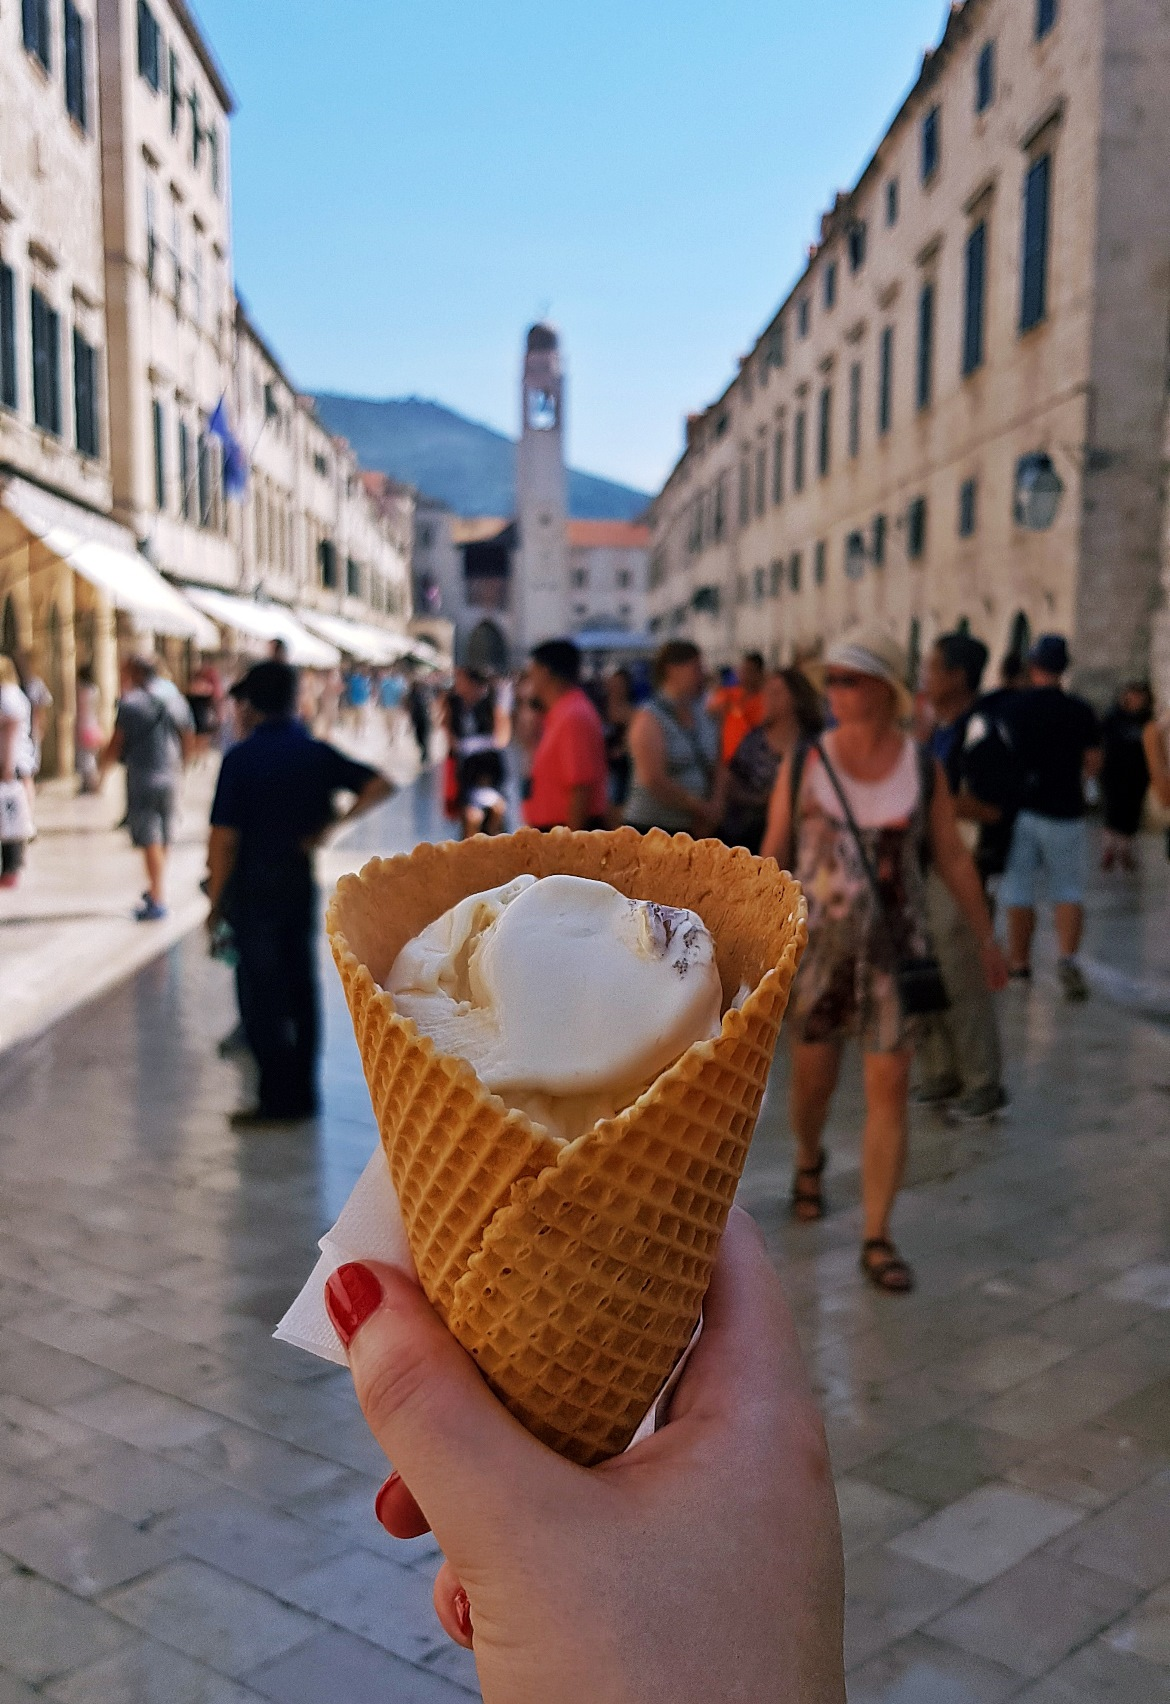 La Dolce Vita ice cream on the Stradun - Sightseeing in Dubrovnik, Croatia - Top Travel Tips by BeckyBecky Blogs